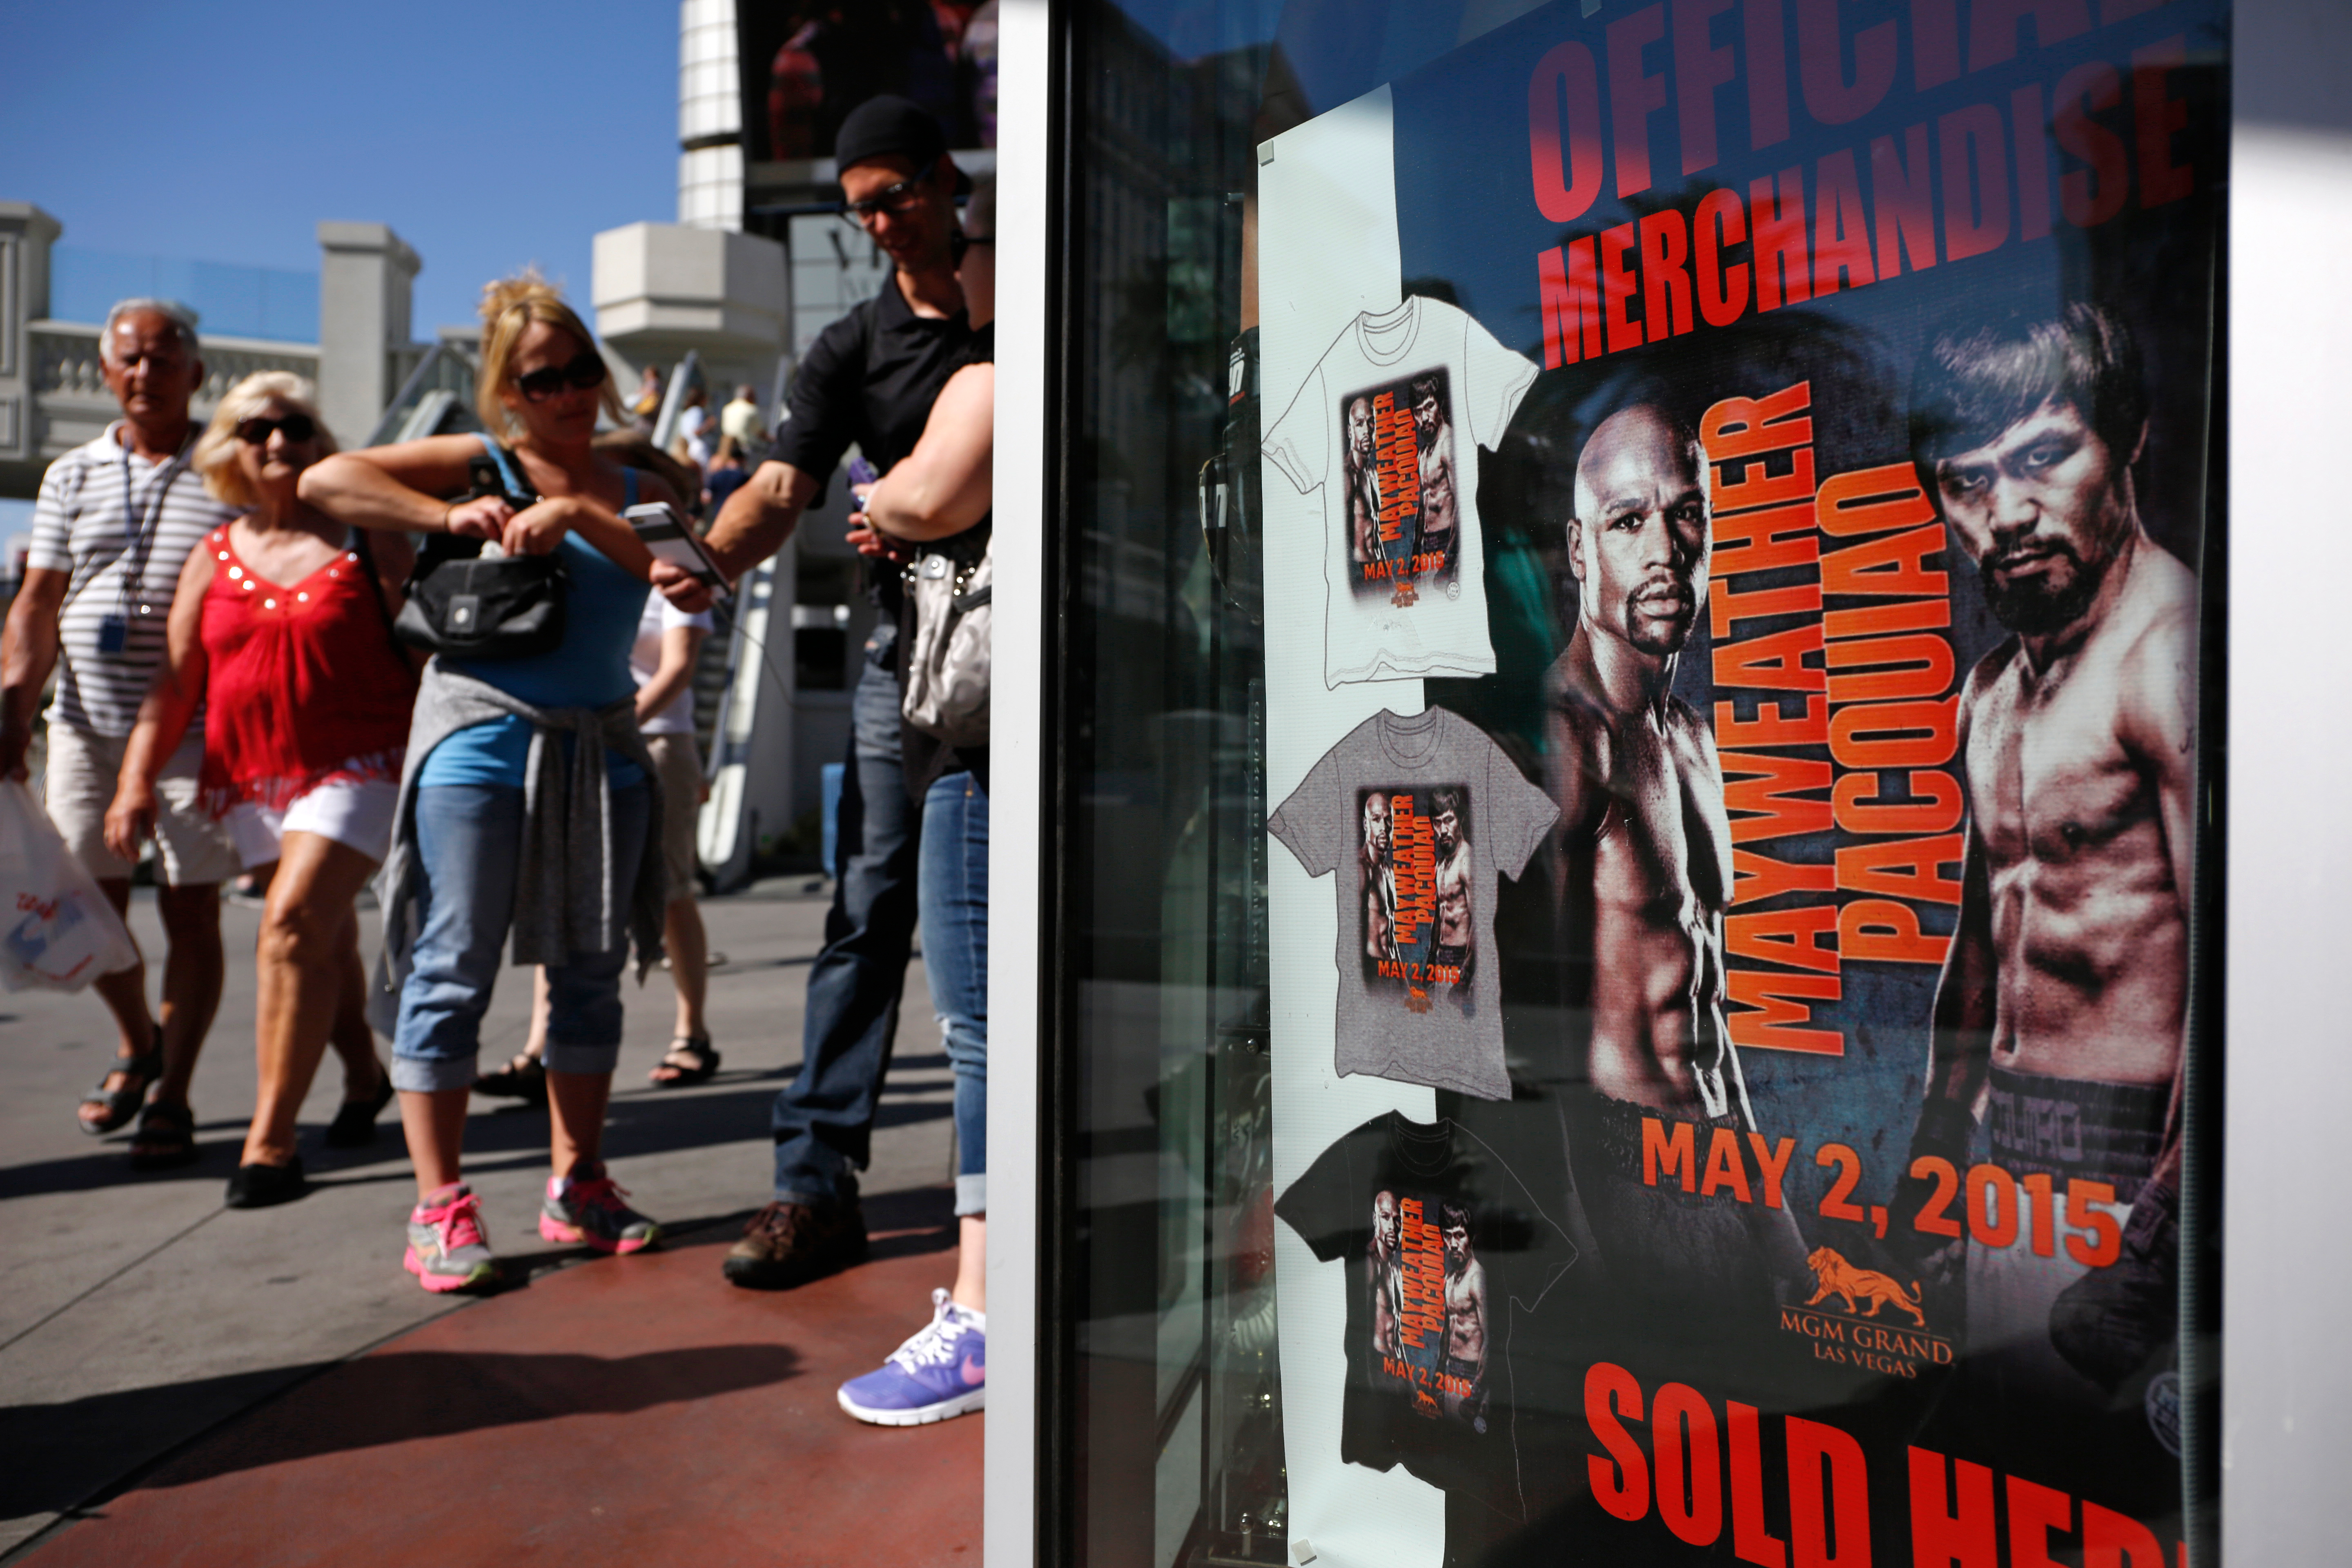 The Mayweather-Pacquiao fight is packing Las Vegas on what already is usually a huge gambling weekend. Lots of businesses are predicting record hauls, including secondary ticket sellers, hotel companies, casinos, restaurants, bars, and the state's legal brothels.